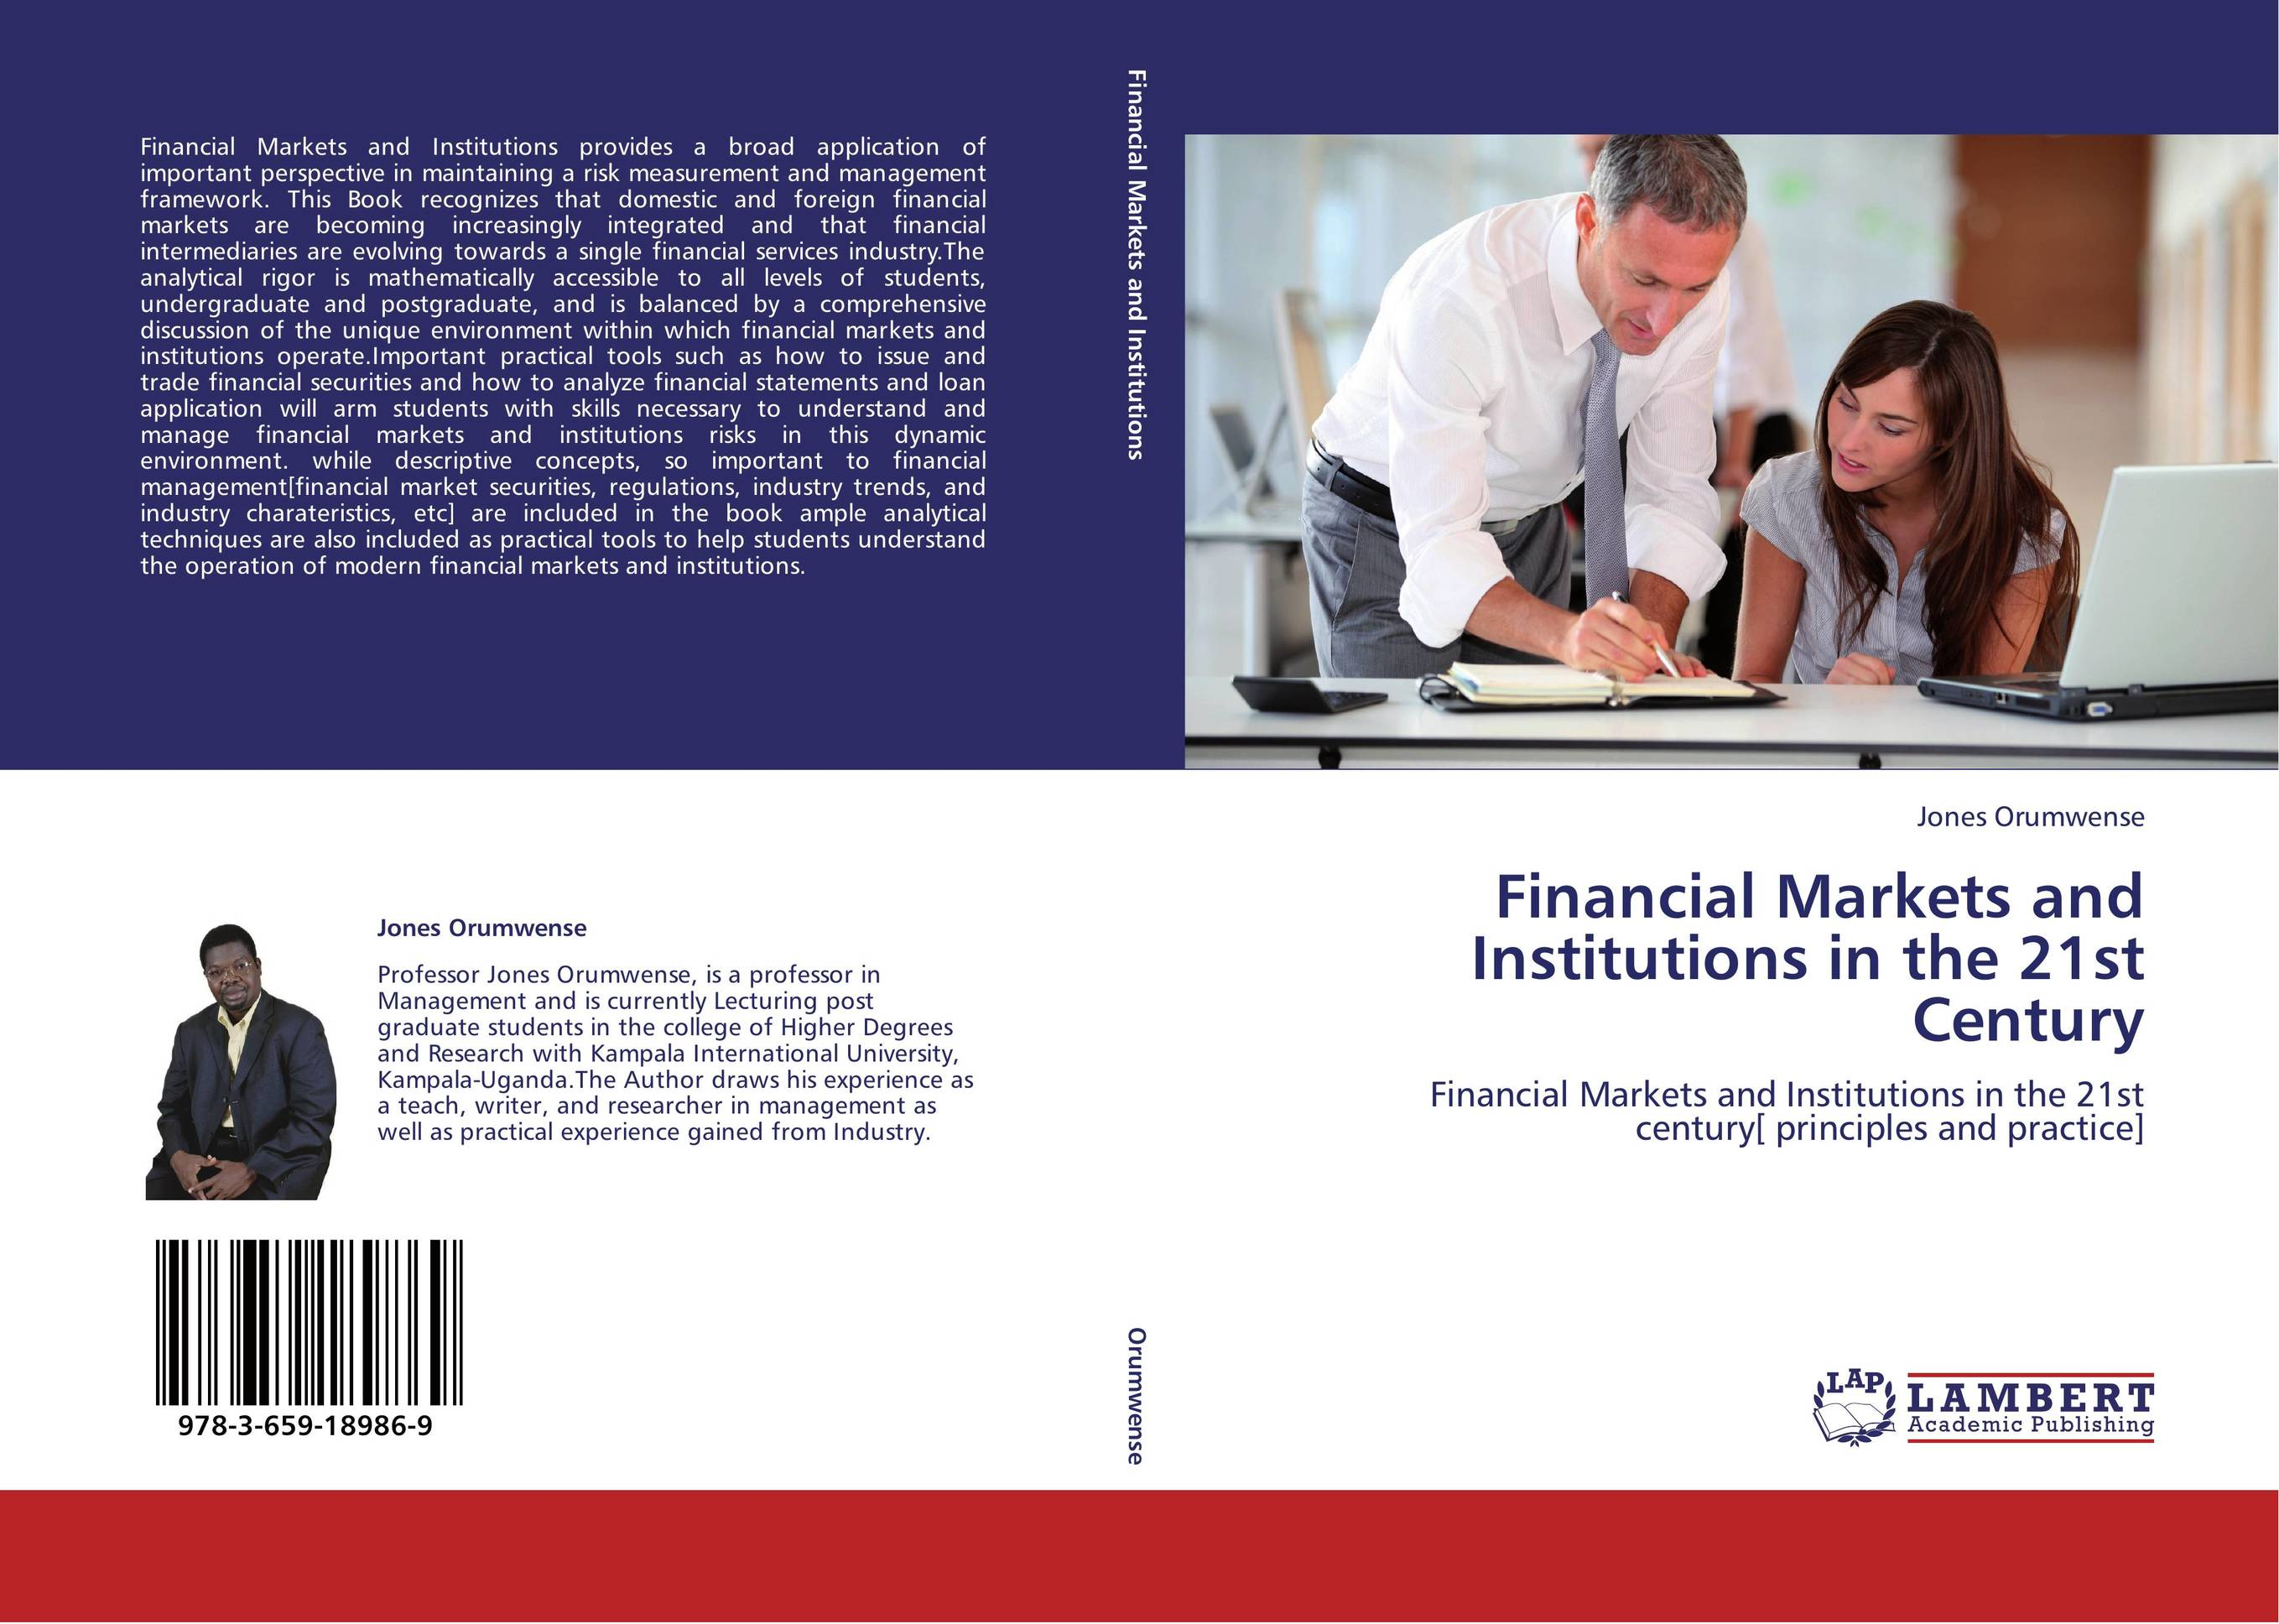 assignment on managing financial principles and techniques Acquire finalized managing financial principles and techniques assignment help and online finance tutor services most of the commerce students especially students of mba search for finance assignment help services to get good scores in their assessments and educational program.